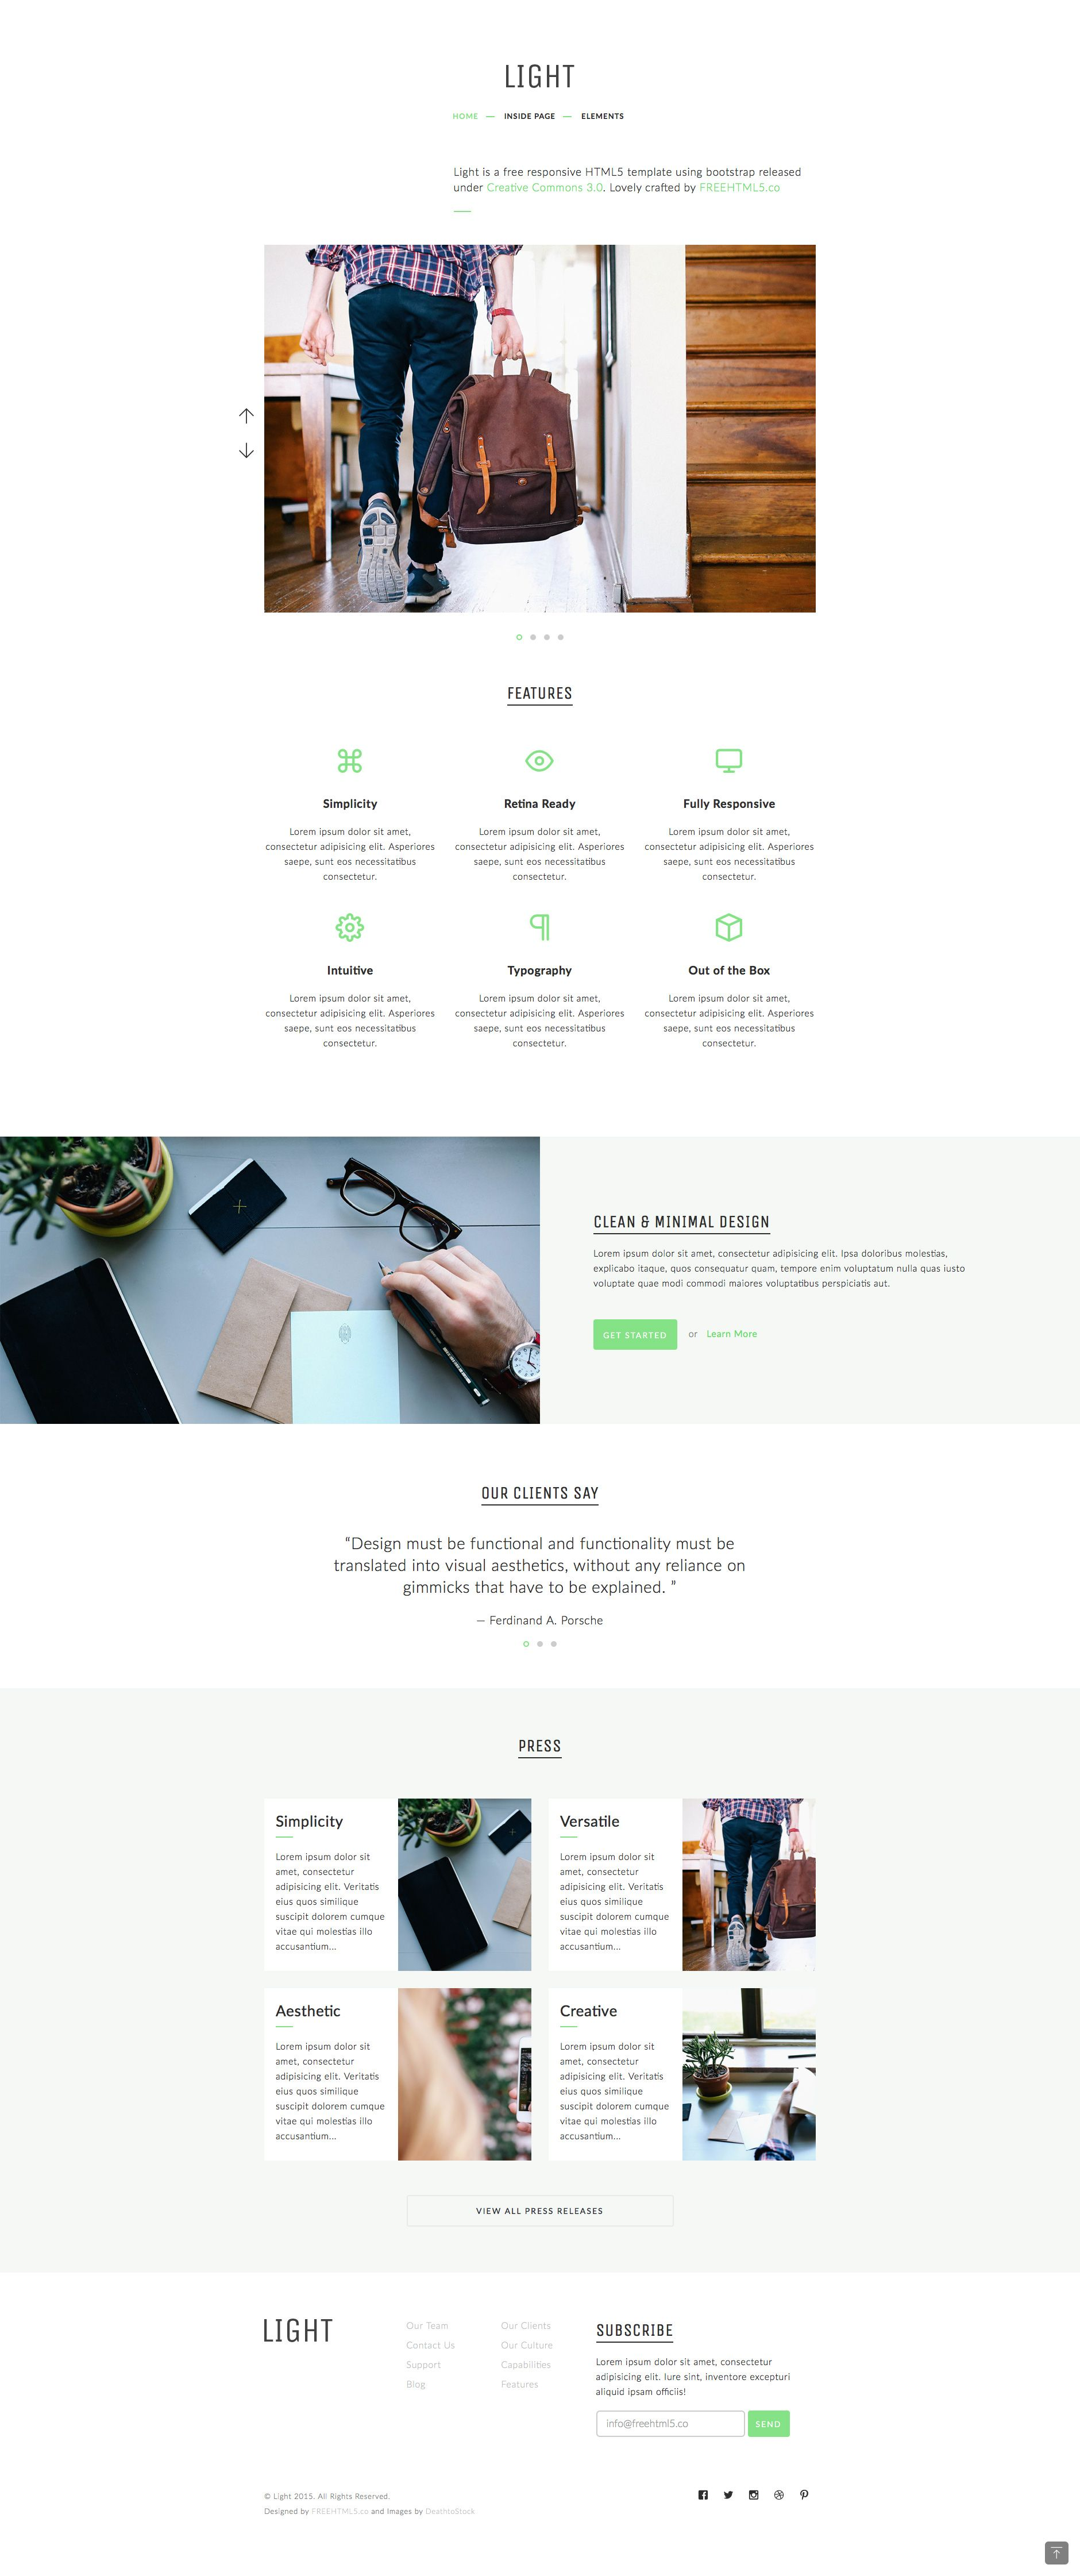 Light is a free responsive html5 bootstrap multipurpose website light is a free responsive html5 bootstrap multipurpose website template it features fully responsive and mobile friendly design google map lightbox and pronofoot35fo Gallery